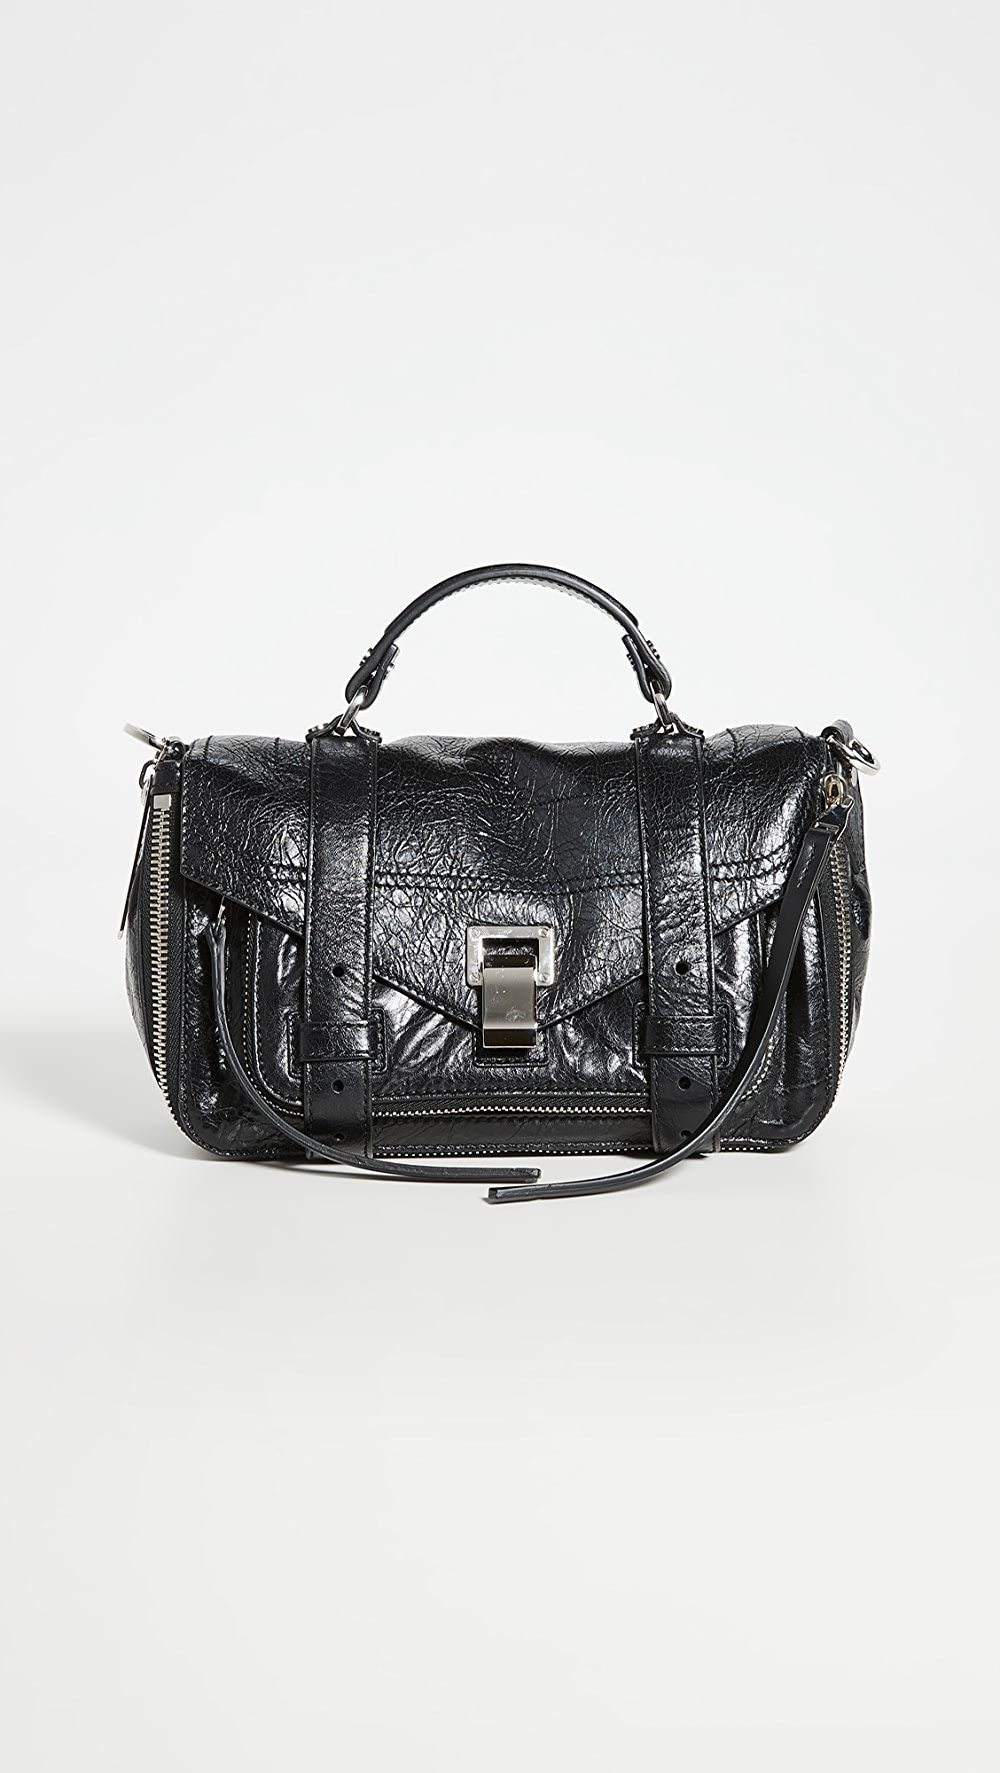 100% True Proenza Schouler - Ps1 Tiny Zip Satchel Numerous In Variety